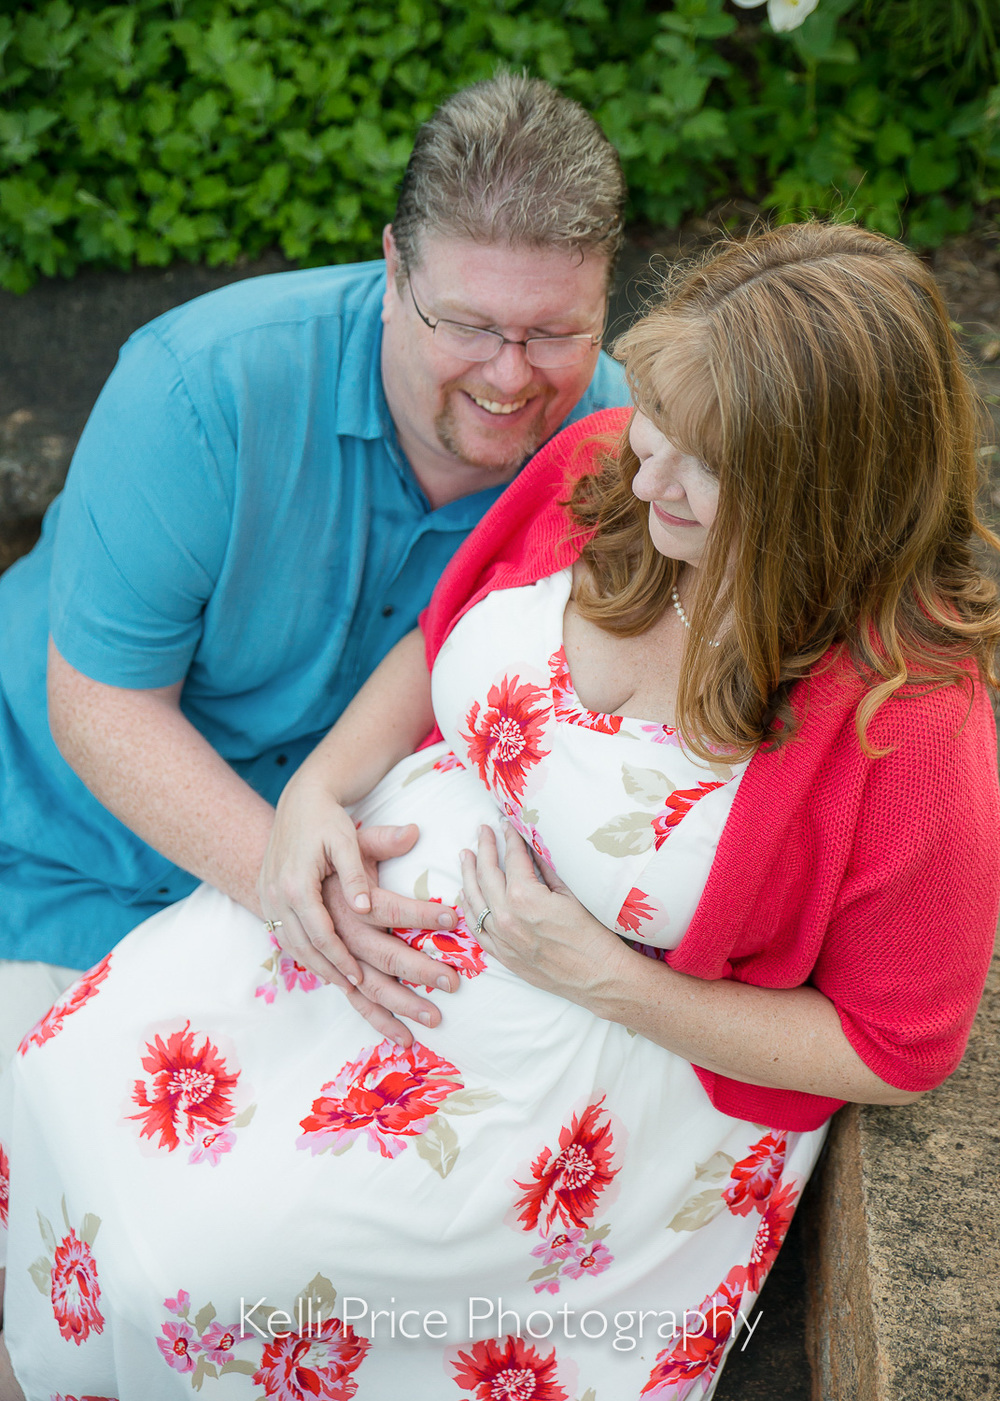 Mom & Dad - Atlanta Maternity Photo Session - Historic Oakland Cemetery, GA